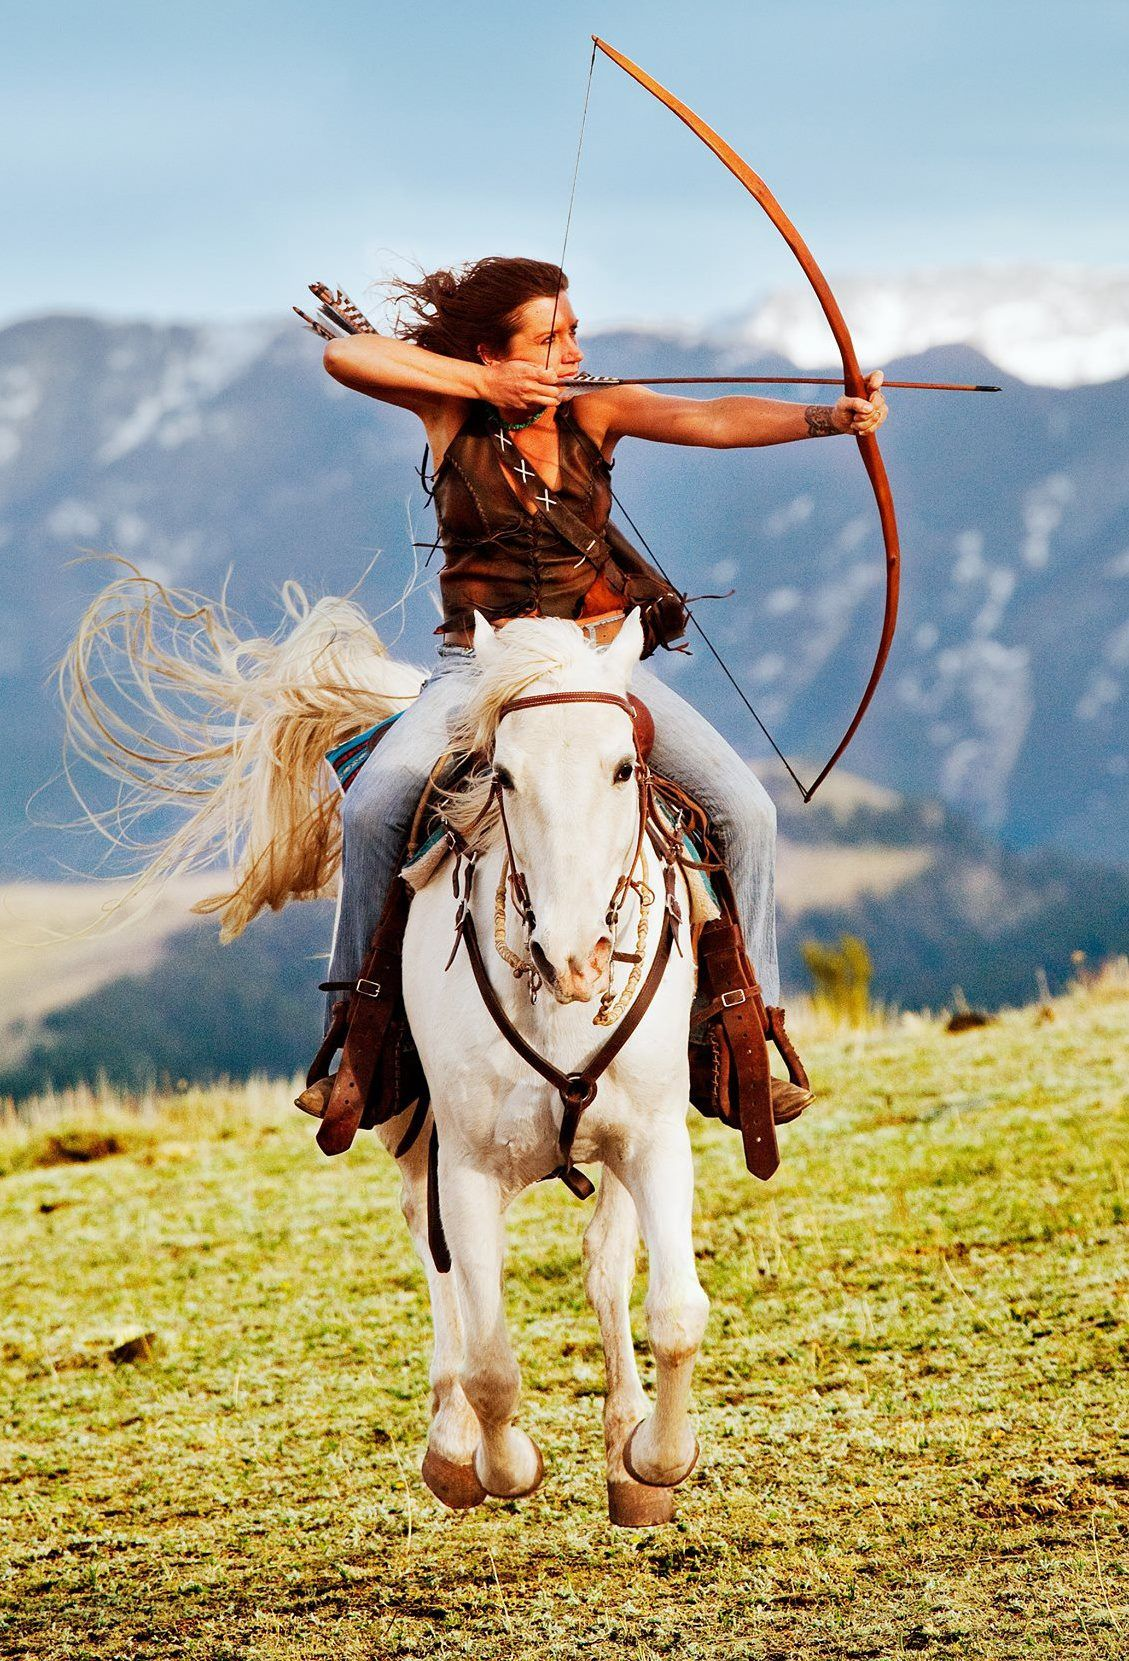 Archerofthenorth Sasha Squires Archer Horsewoman